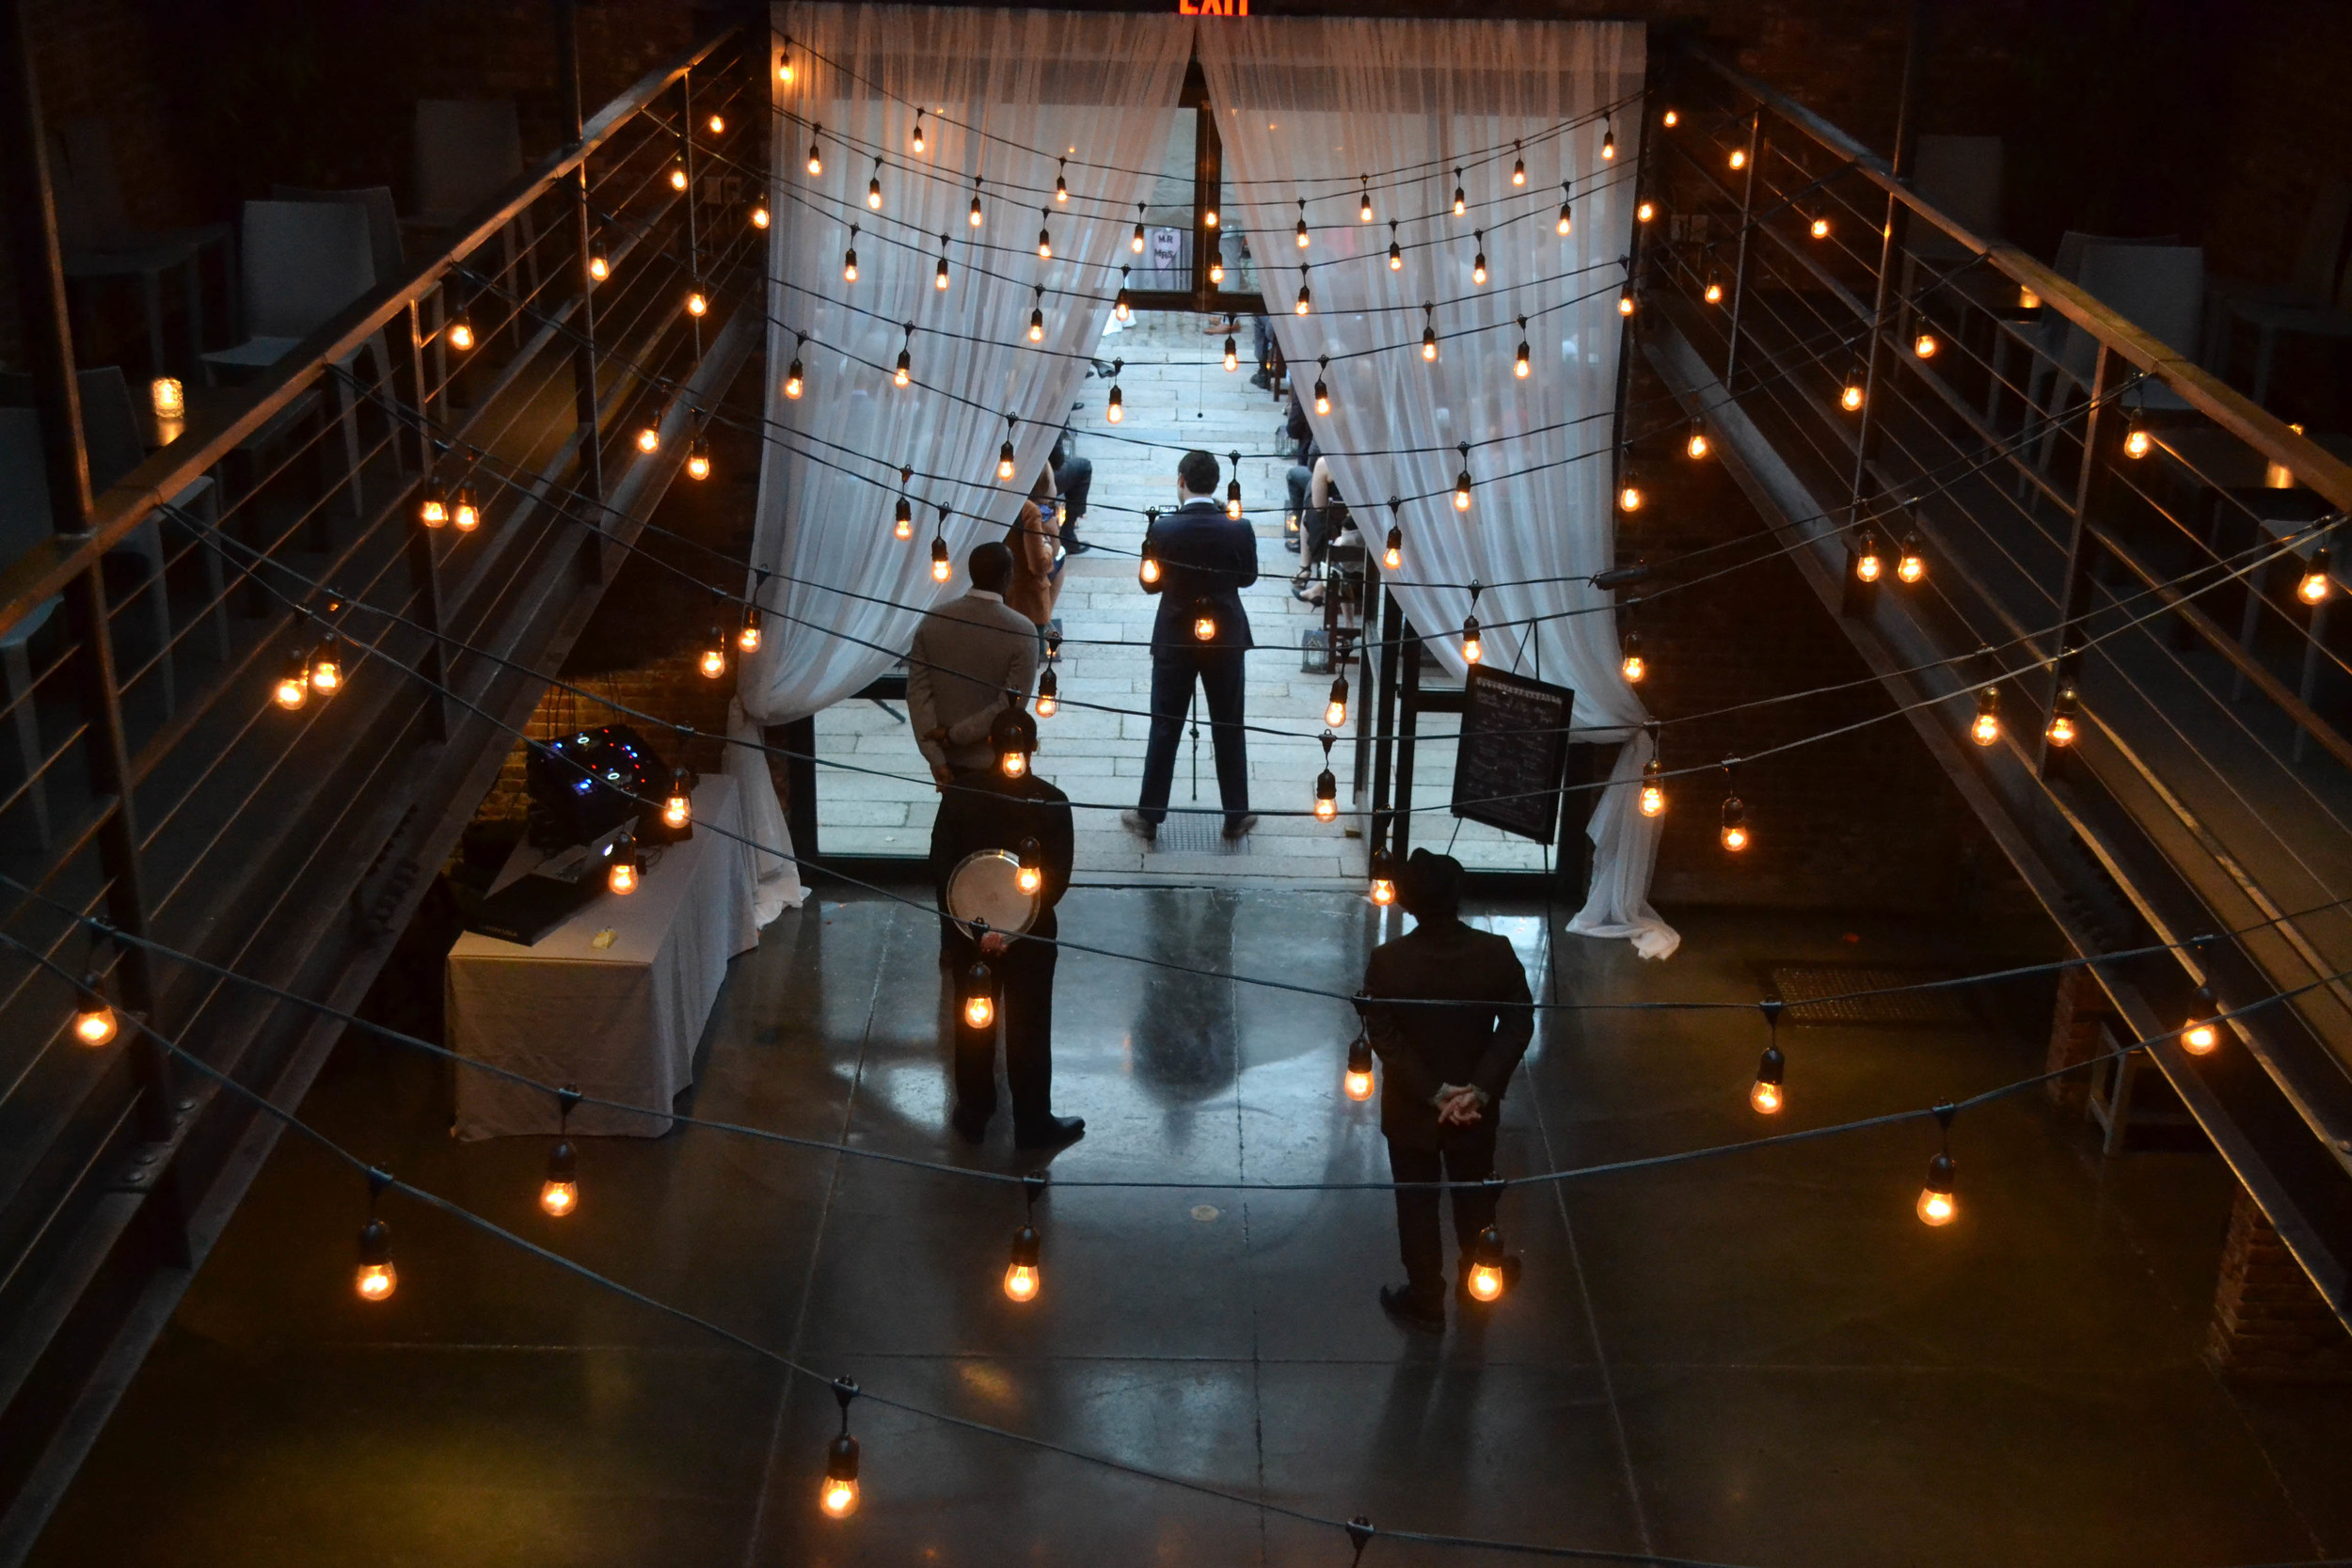 Foundry LIC wedding, lights